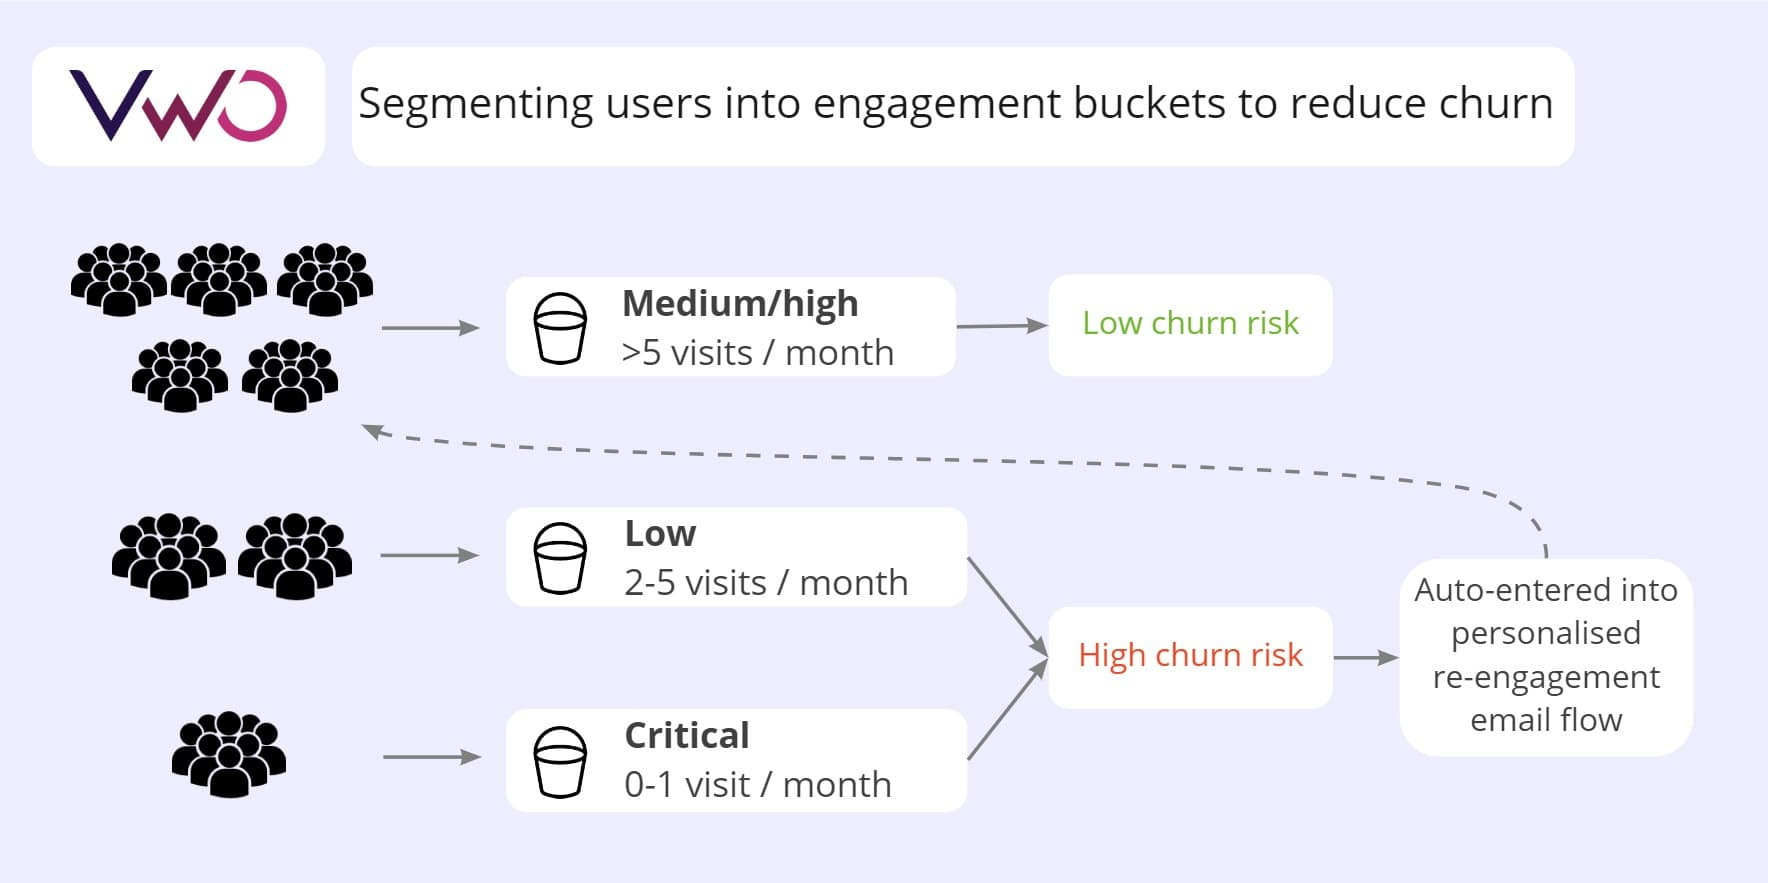 VWO segmented users by engagement. Users with low engagement were entered into a re-engagement email flow to reduce churn